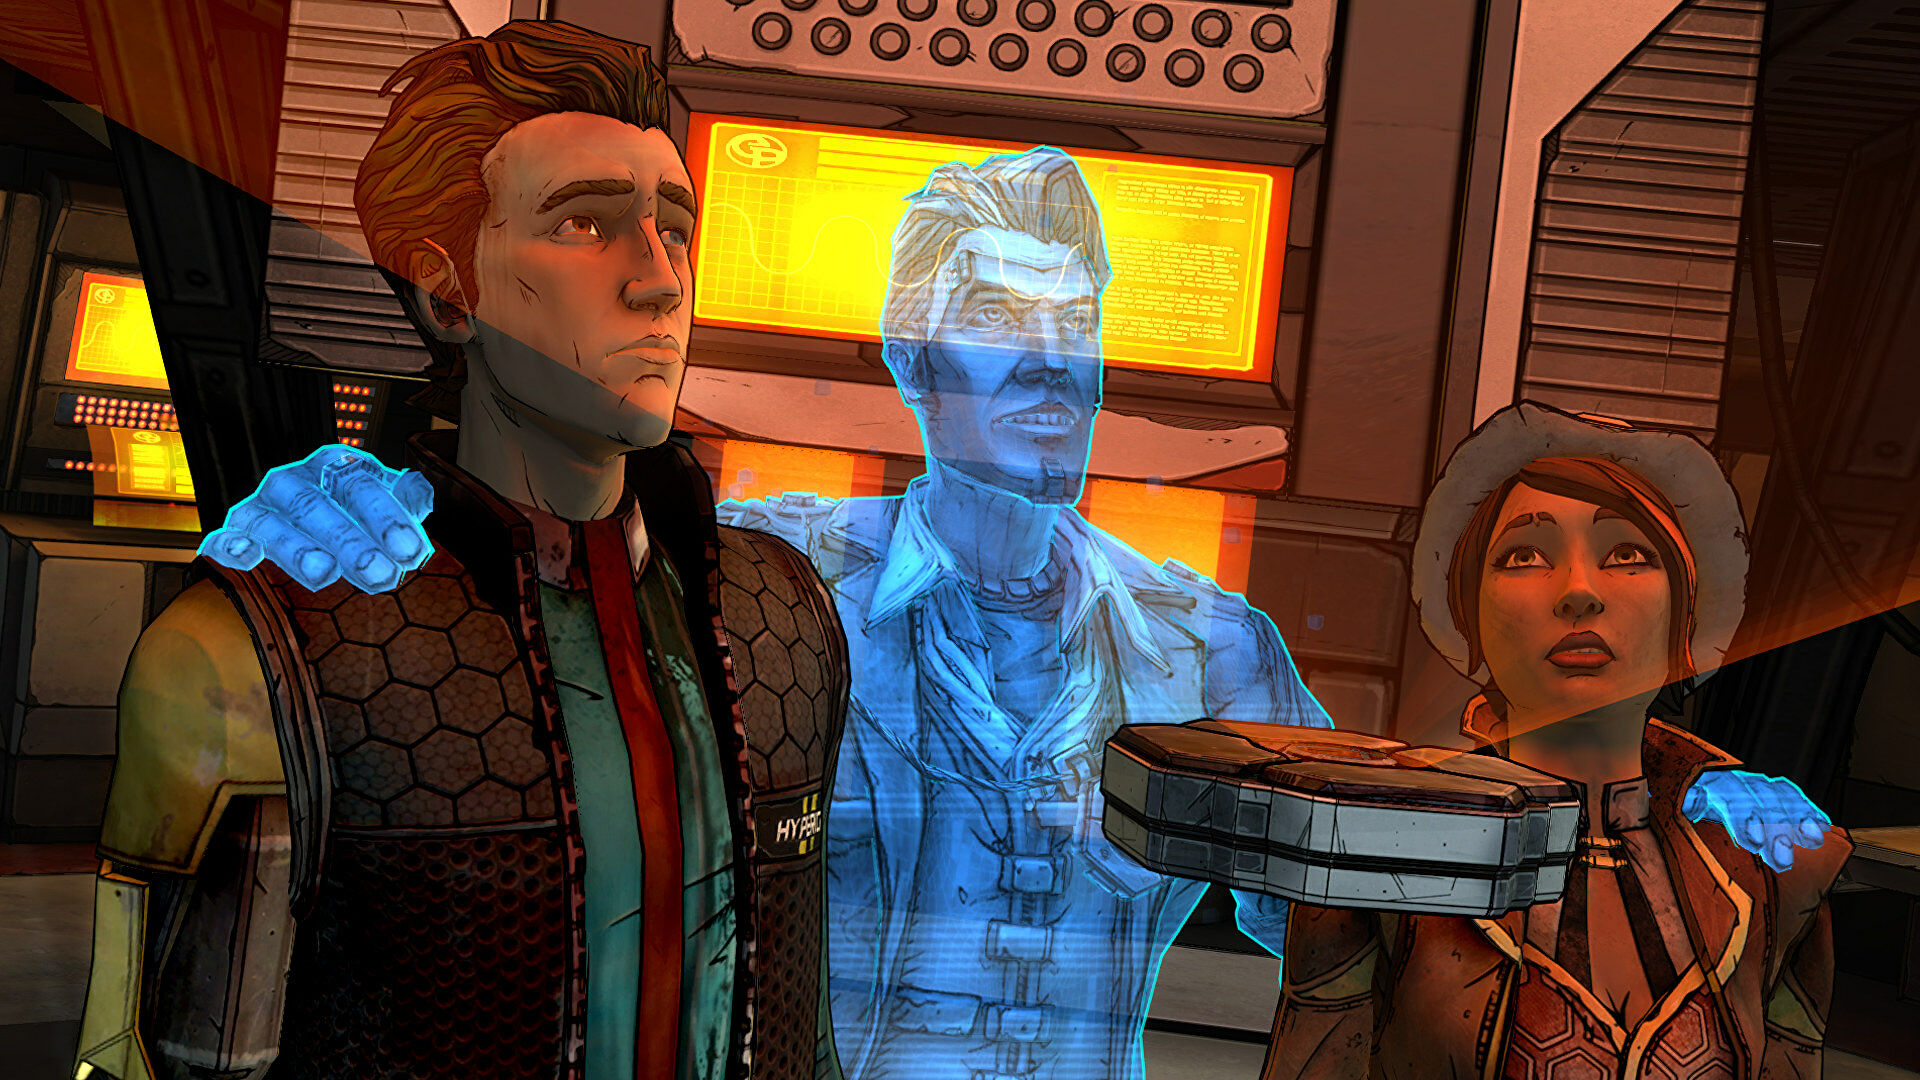 Tales From The Borderlands, the best Borderlands game, is back in stores